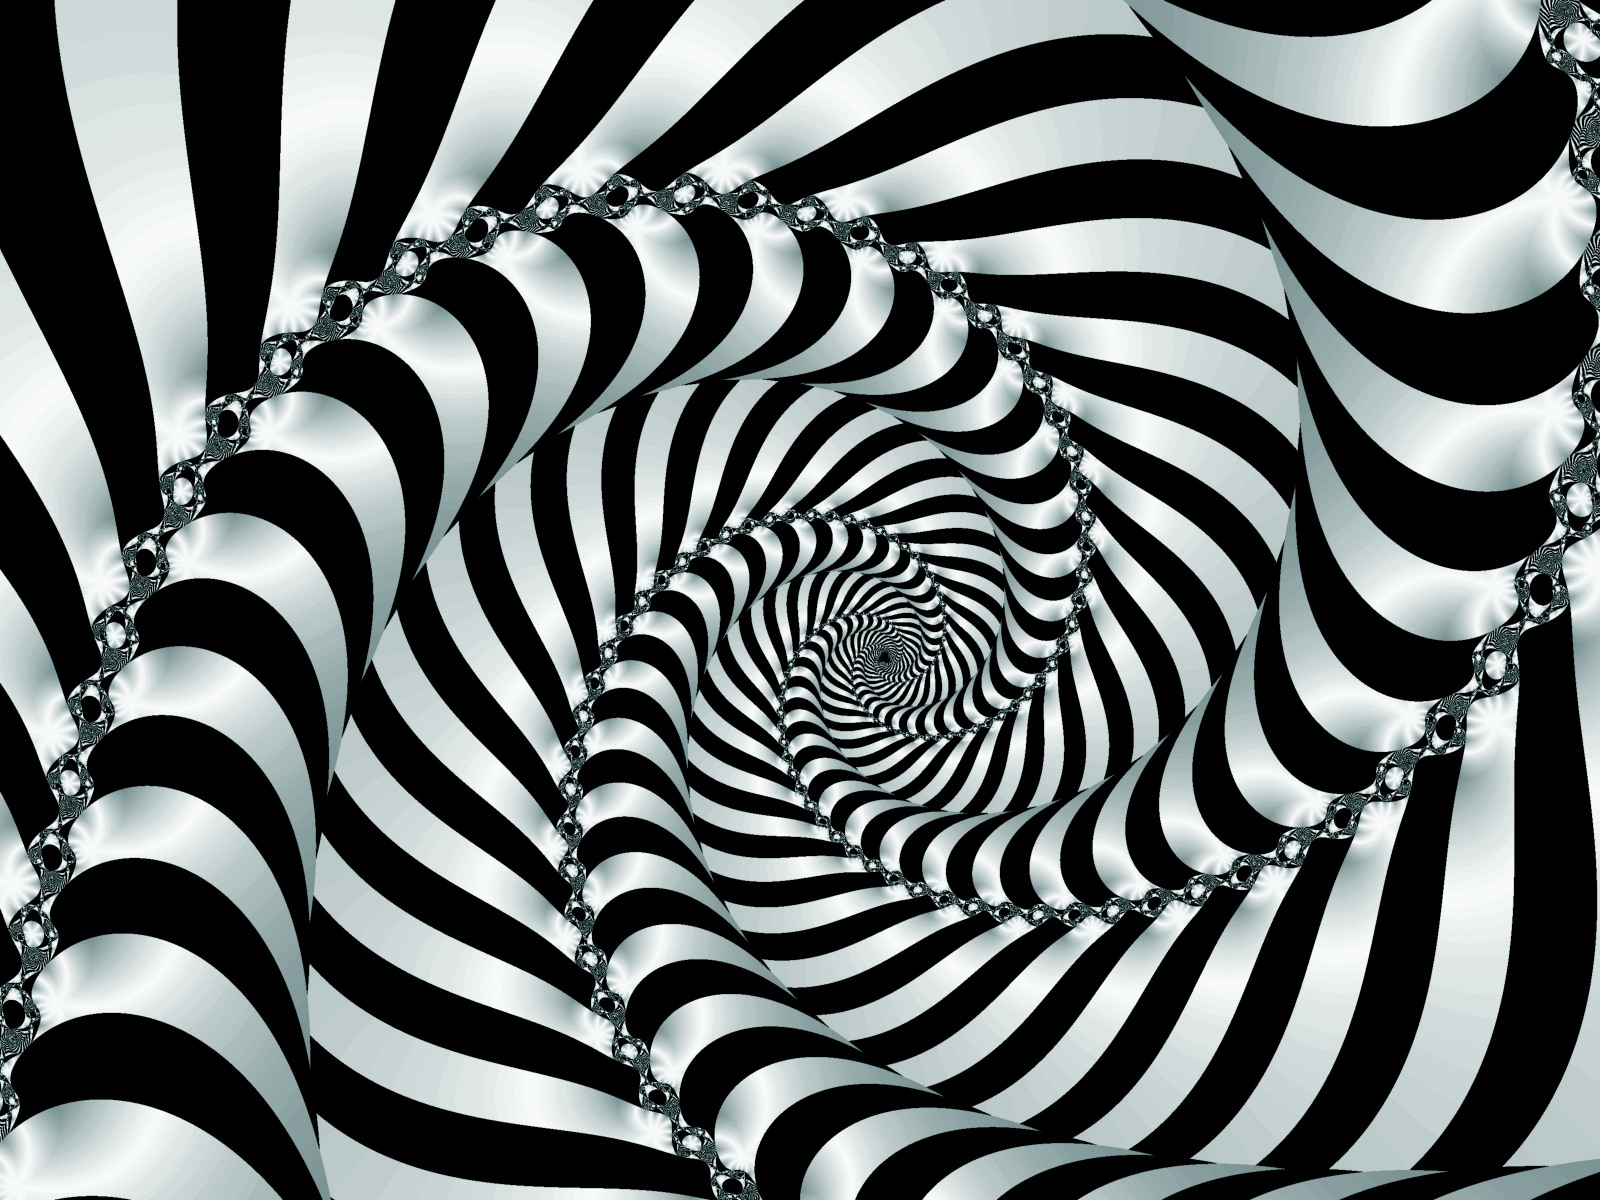 illusions optical illusion space awesome crazy moving drawing amazing 3d teasers super